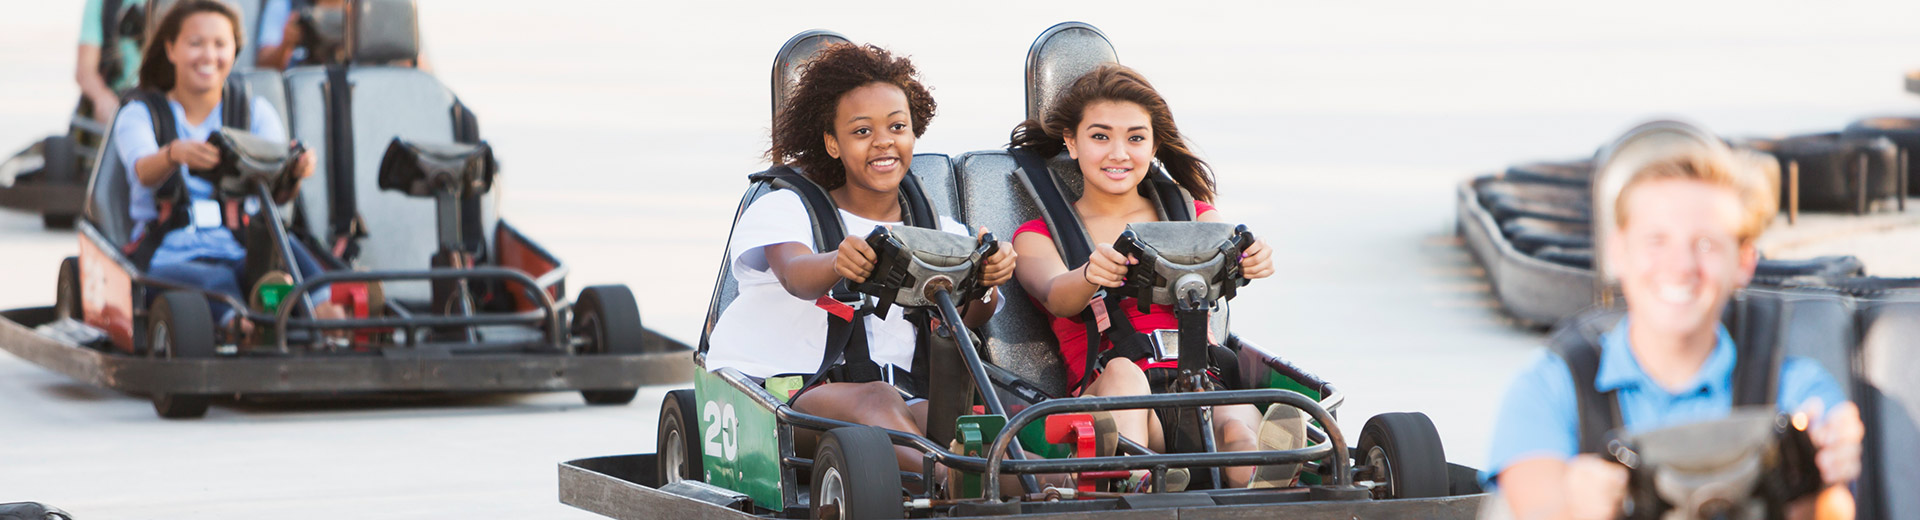 Go Karts | Adventure Landing Family Entertainment Center | Jacksonville, FL